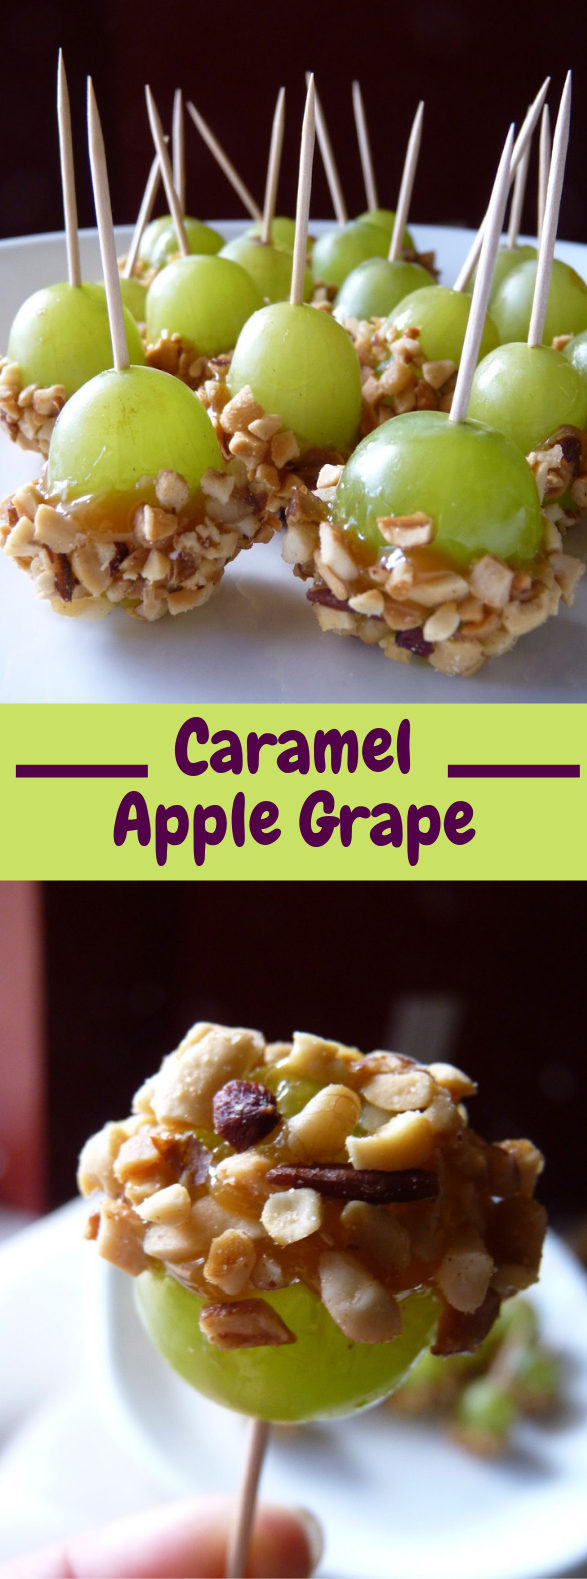 Caramel Apple Grapes #Snack #Dessert